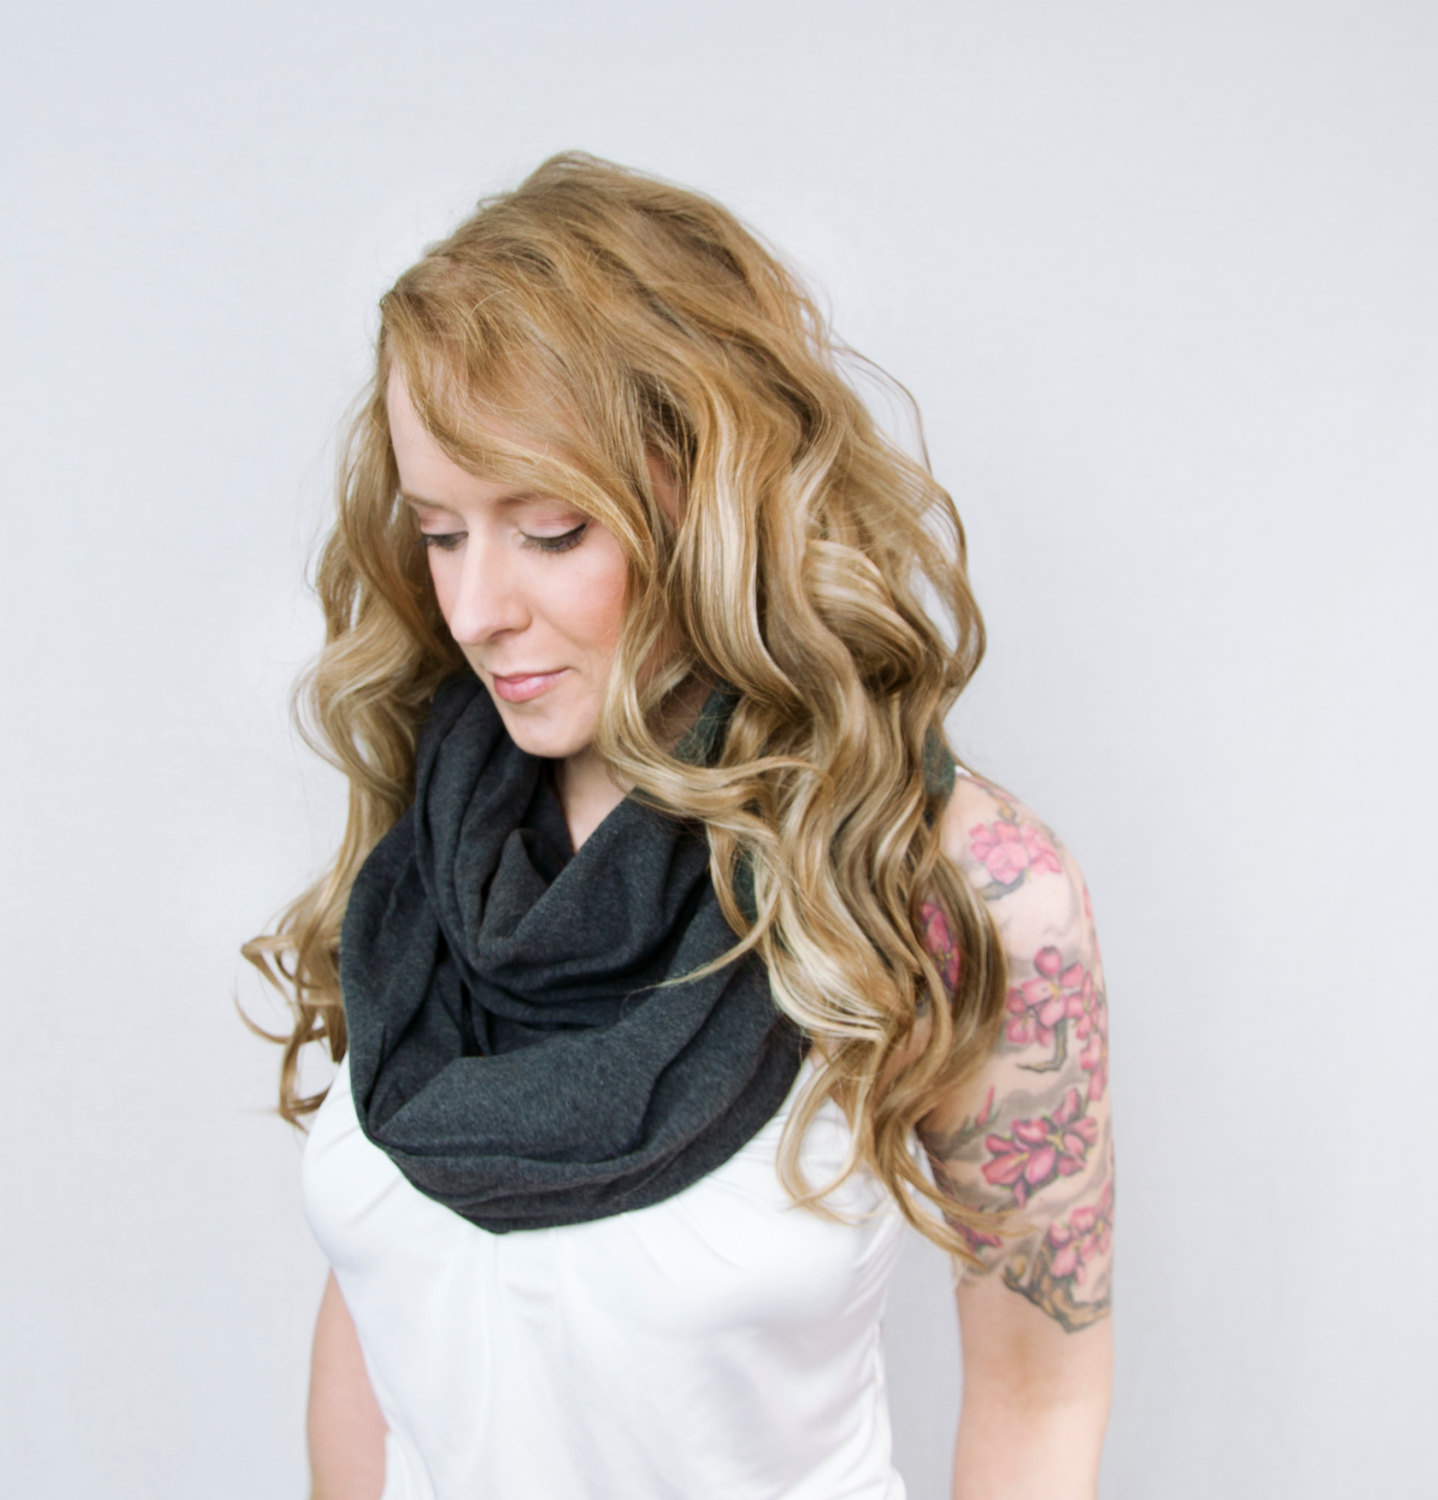 Infinity Scarf Dark Gray, Charcoal Grey Scarf, Jersey GreyScarf, Pewter Scarf, Circle Scarf, Wide Long Women